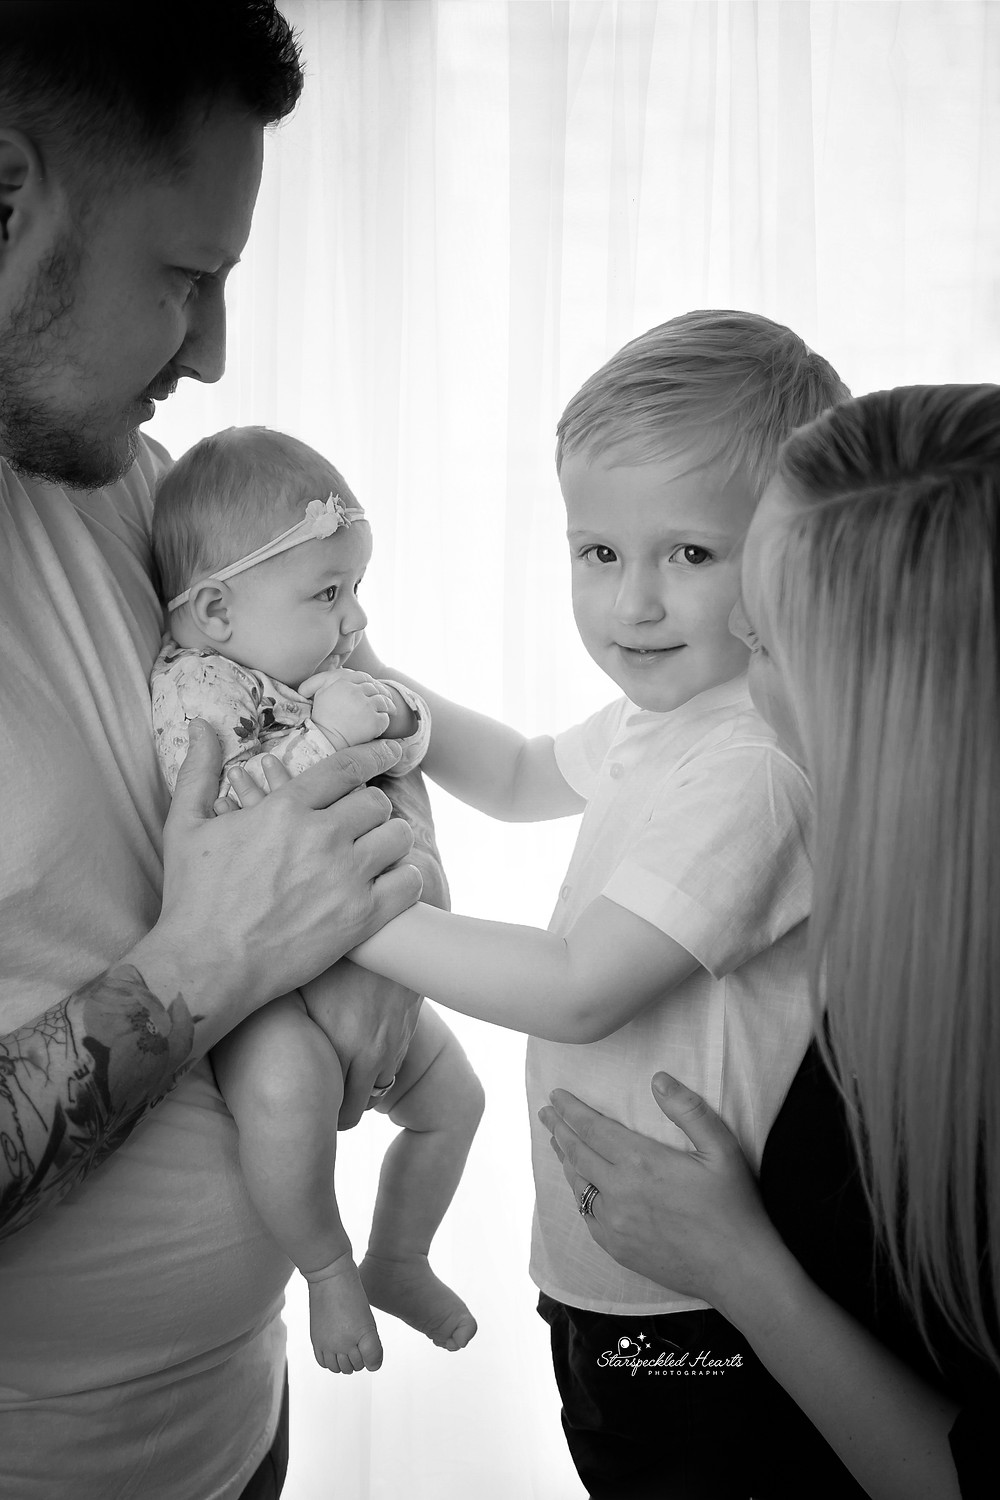 a family portrait focused on a big brother and baby sister for her newborn baby photography session